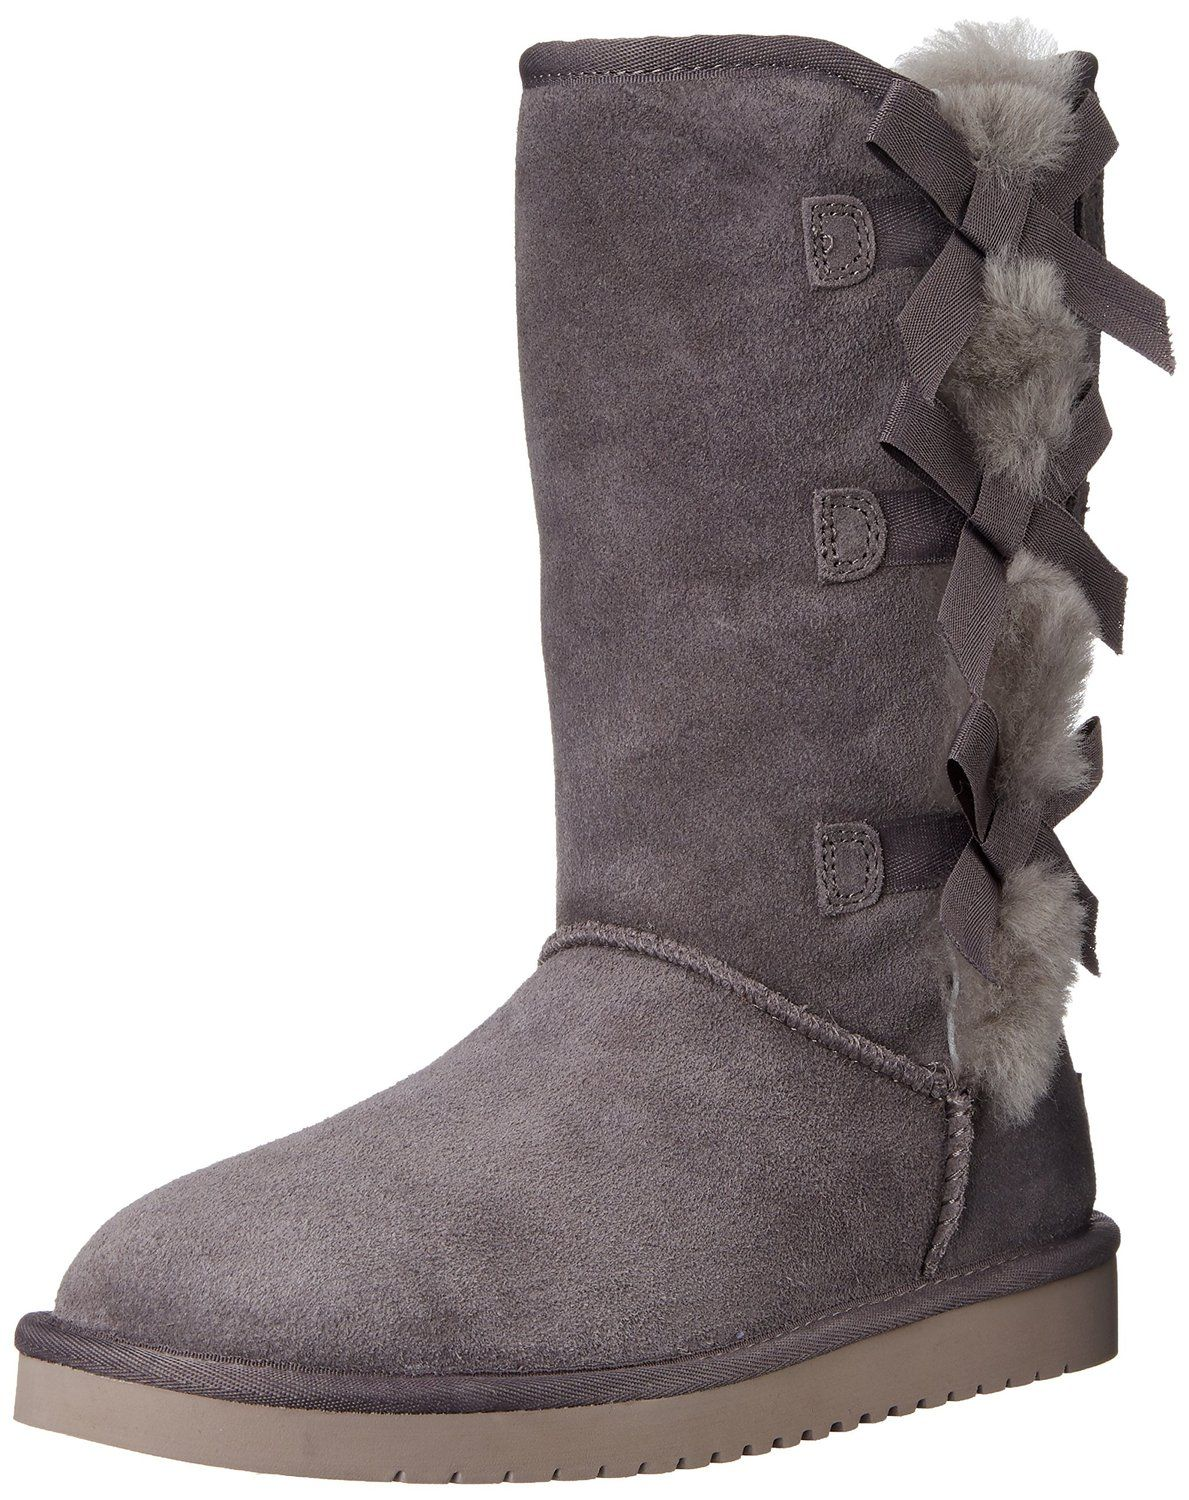 0fc9b38ed25 Amazon.com | Koolaburra by UGG Women's Victoria Tall Winter Boot ...